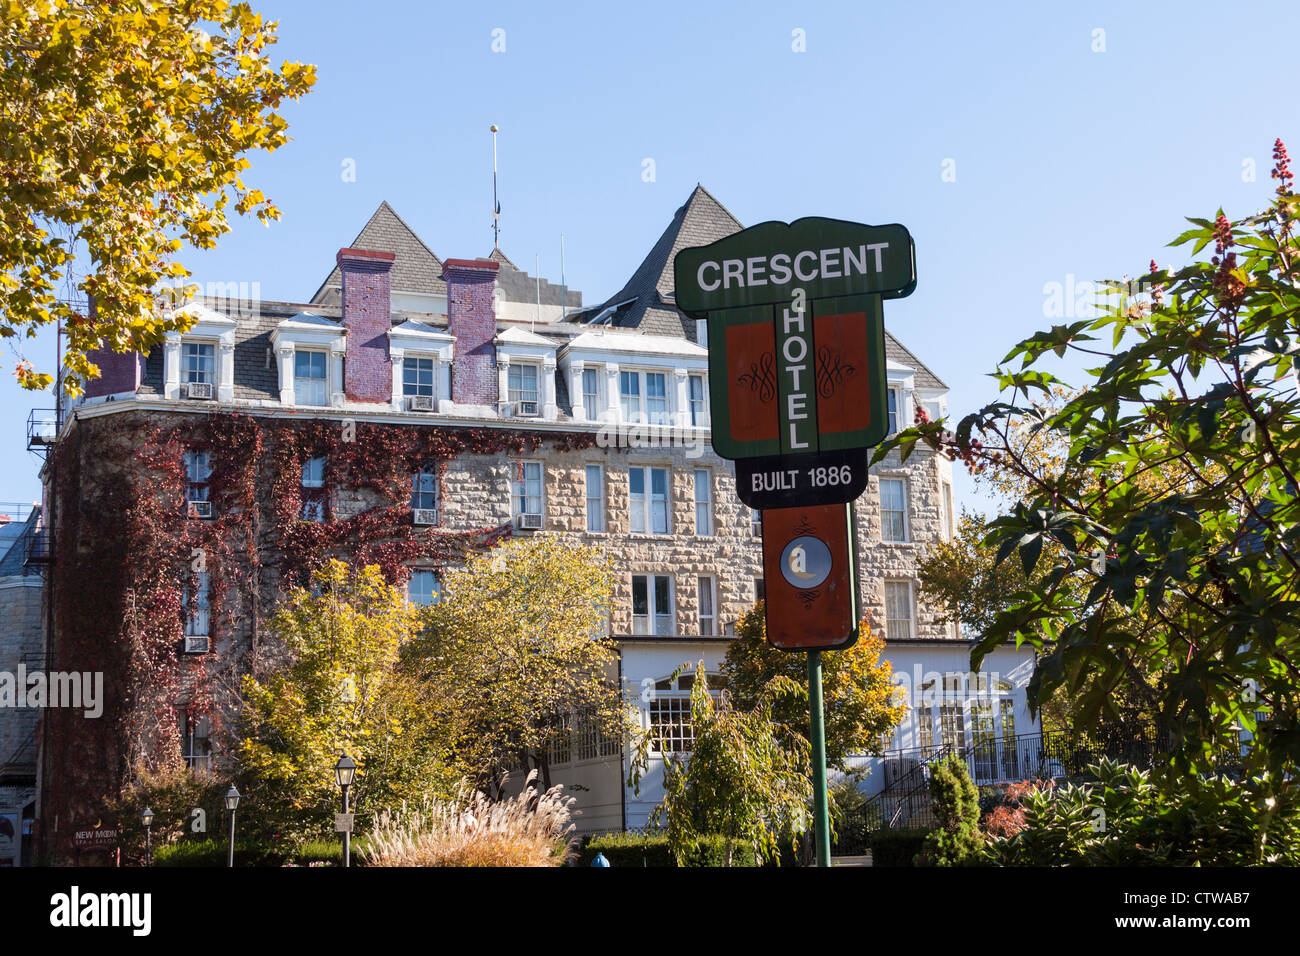 Famous Crescent Hotel in Eureka Springs, opened in 1886, said to be haunted. - Stock Image